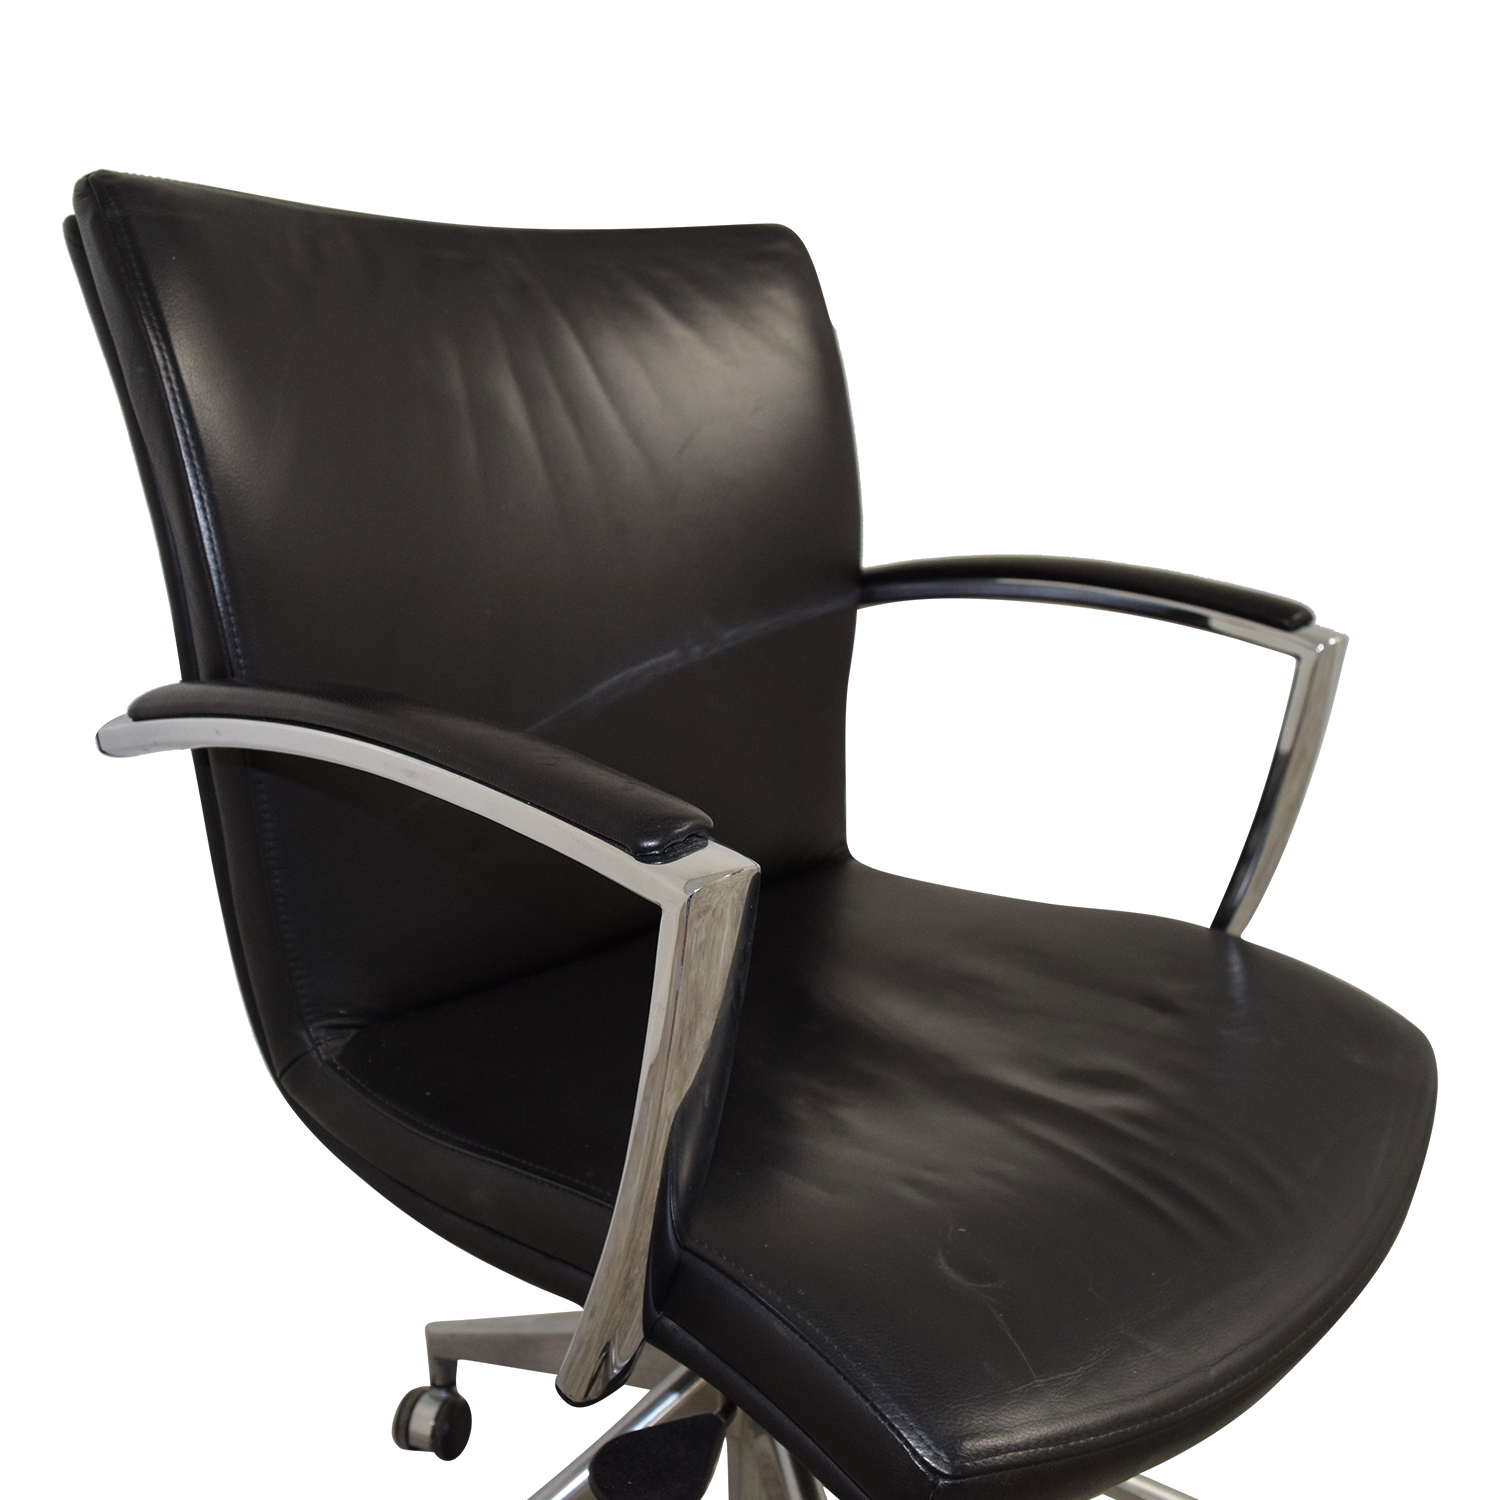 61 off black leather desk chair chairs for Home office chairs leather